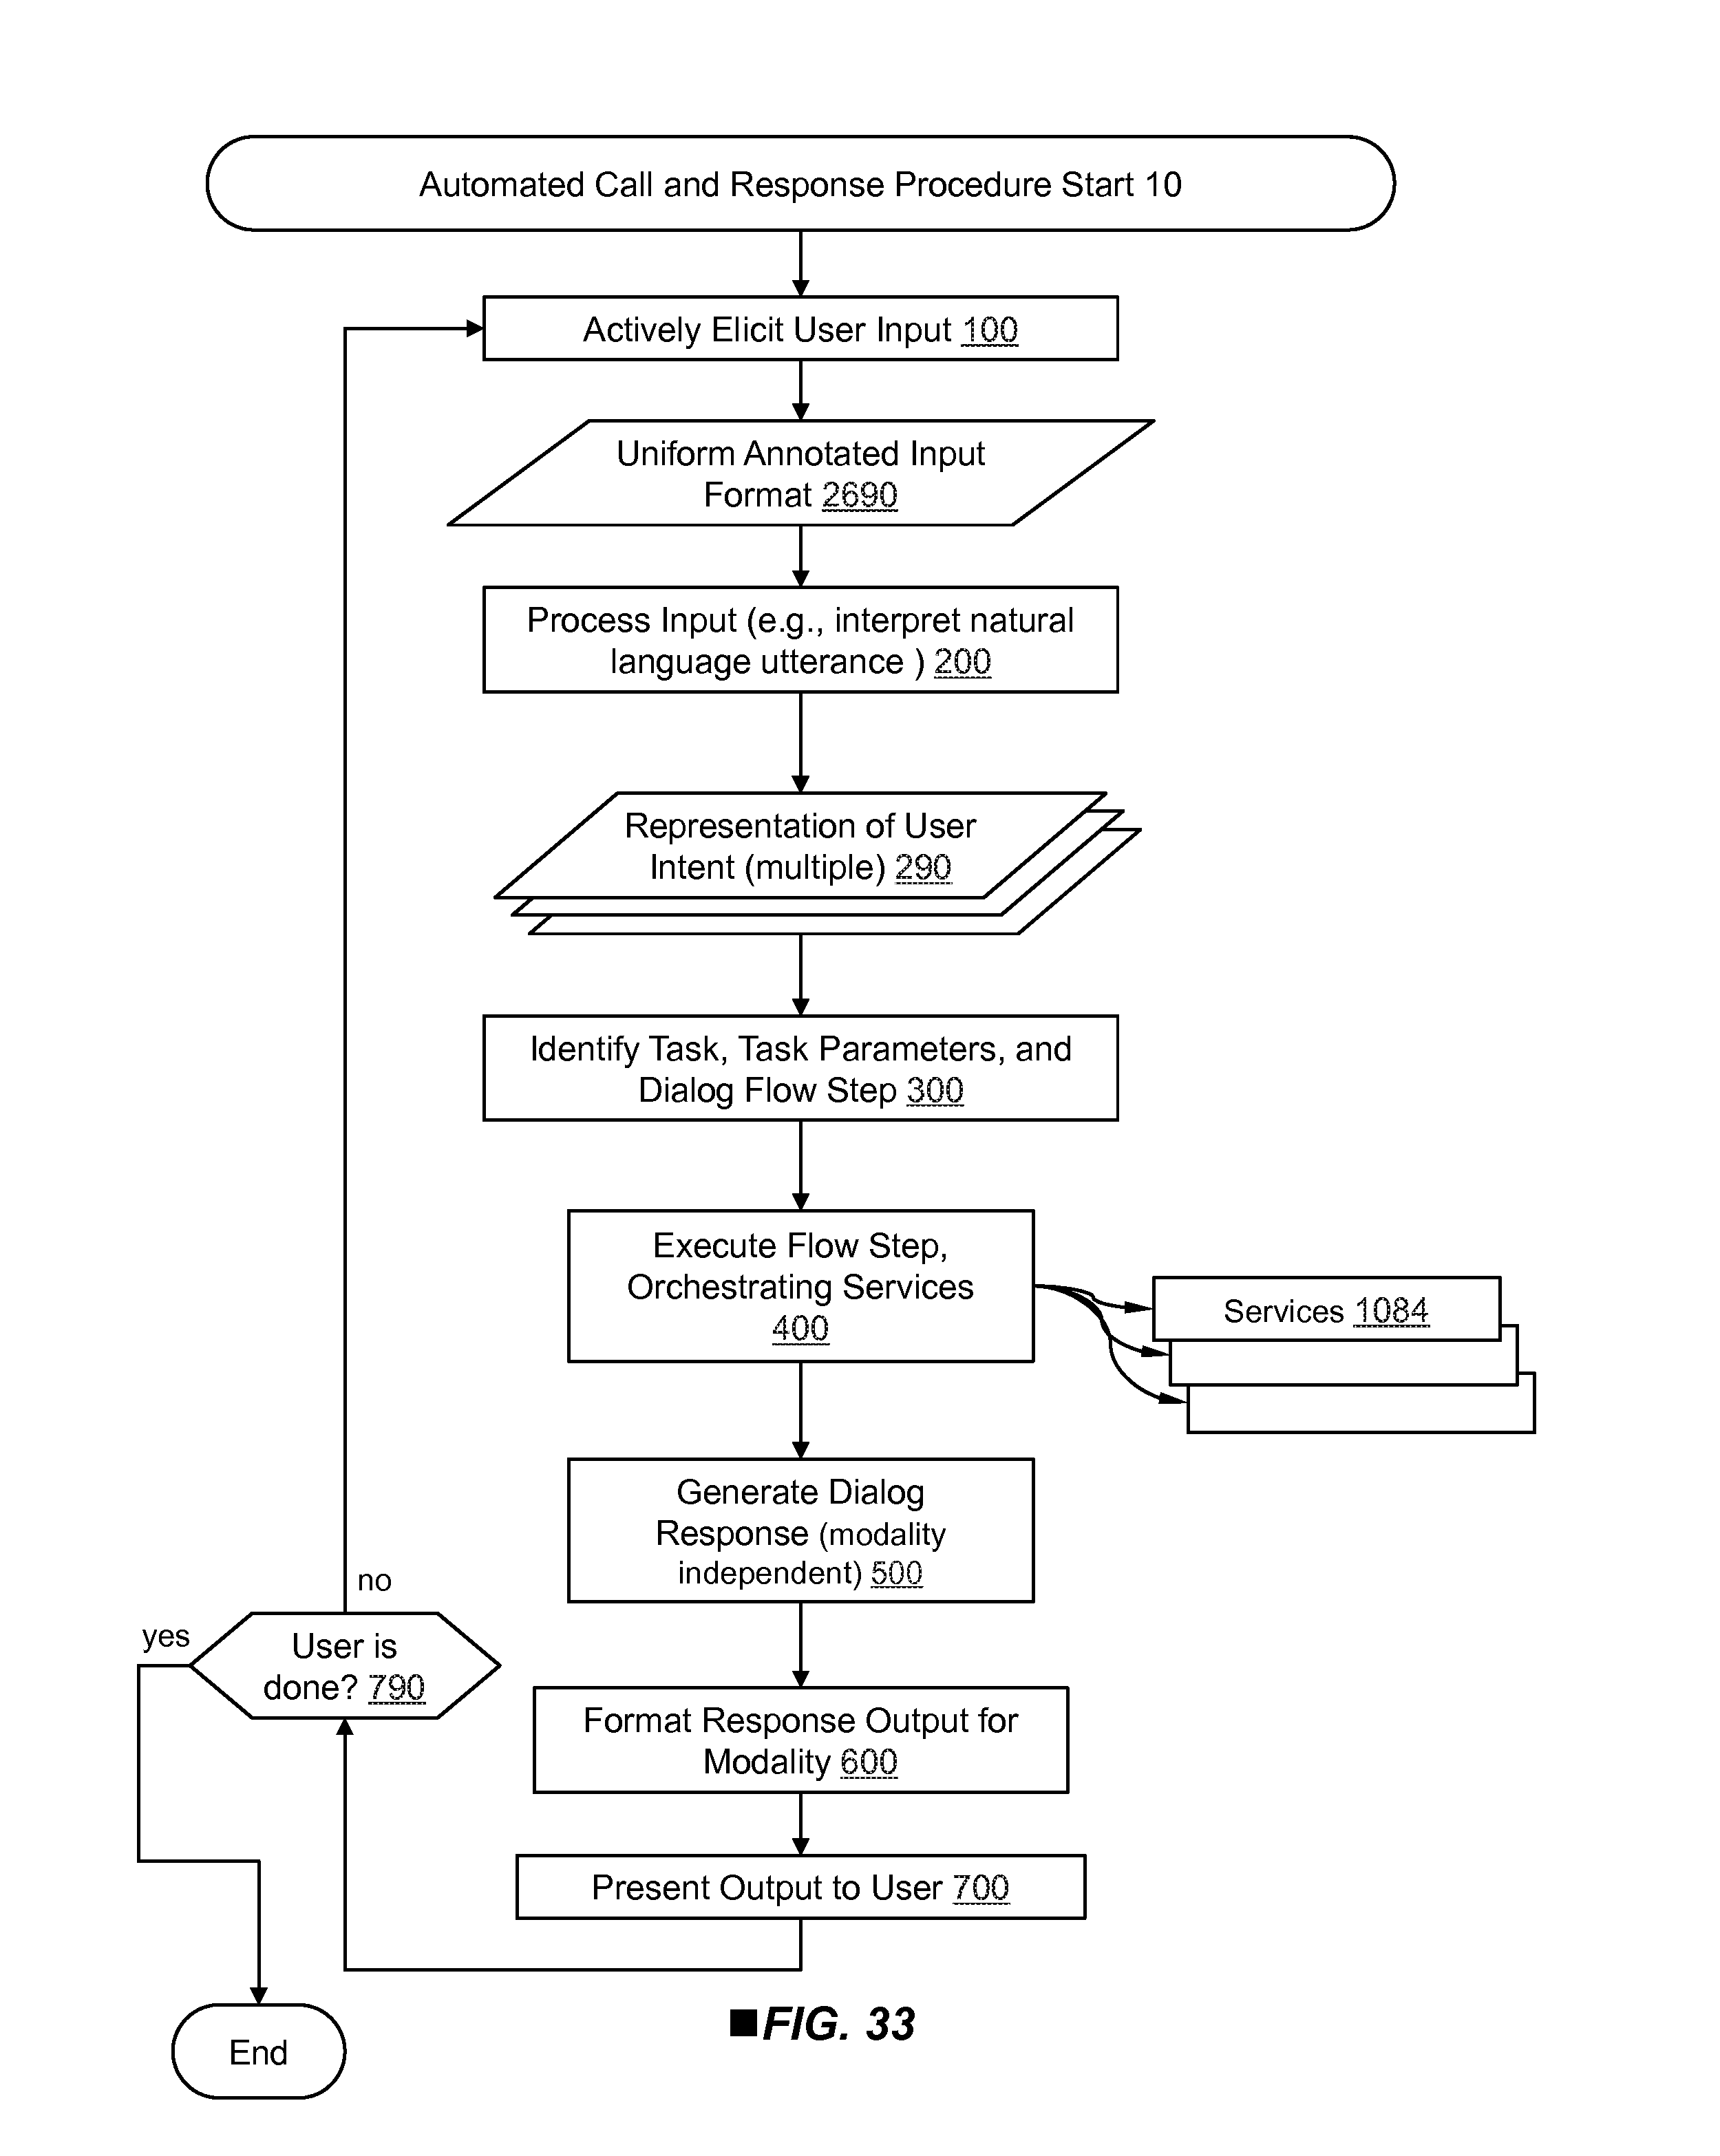 Us20130110518a1 active input elicitation by intelligent automated assistant patents